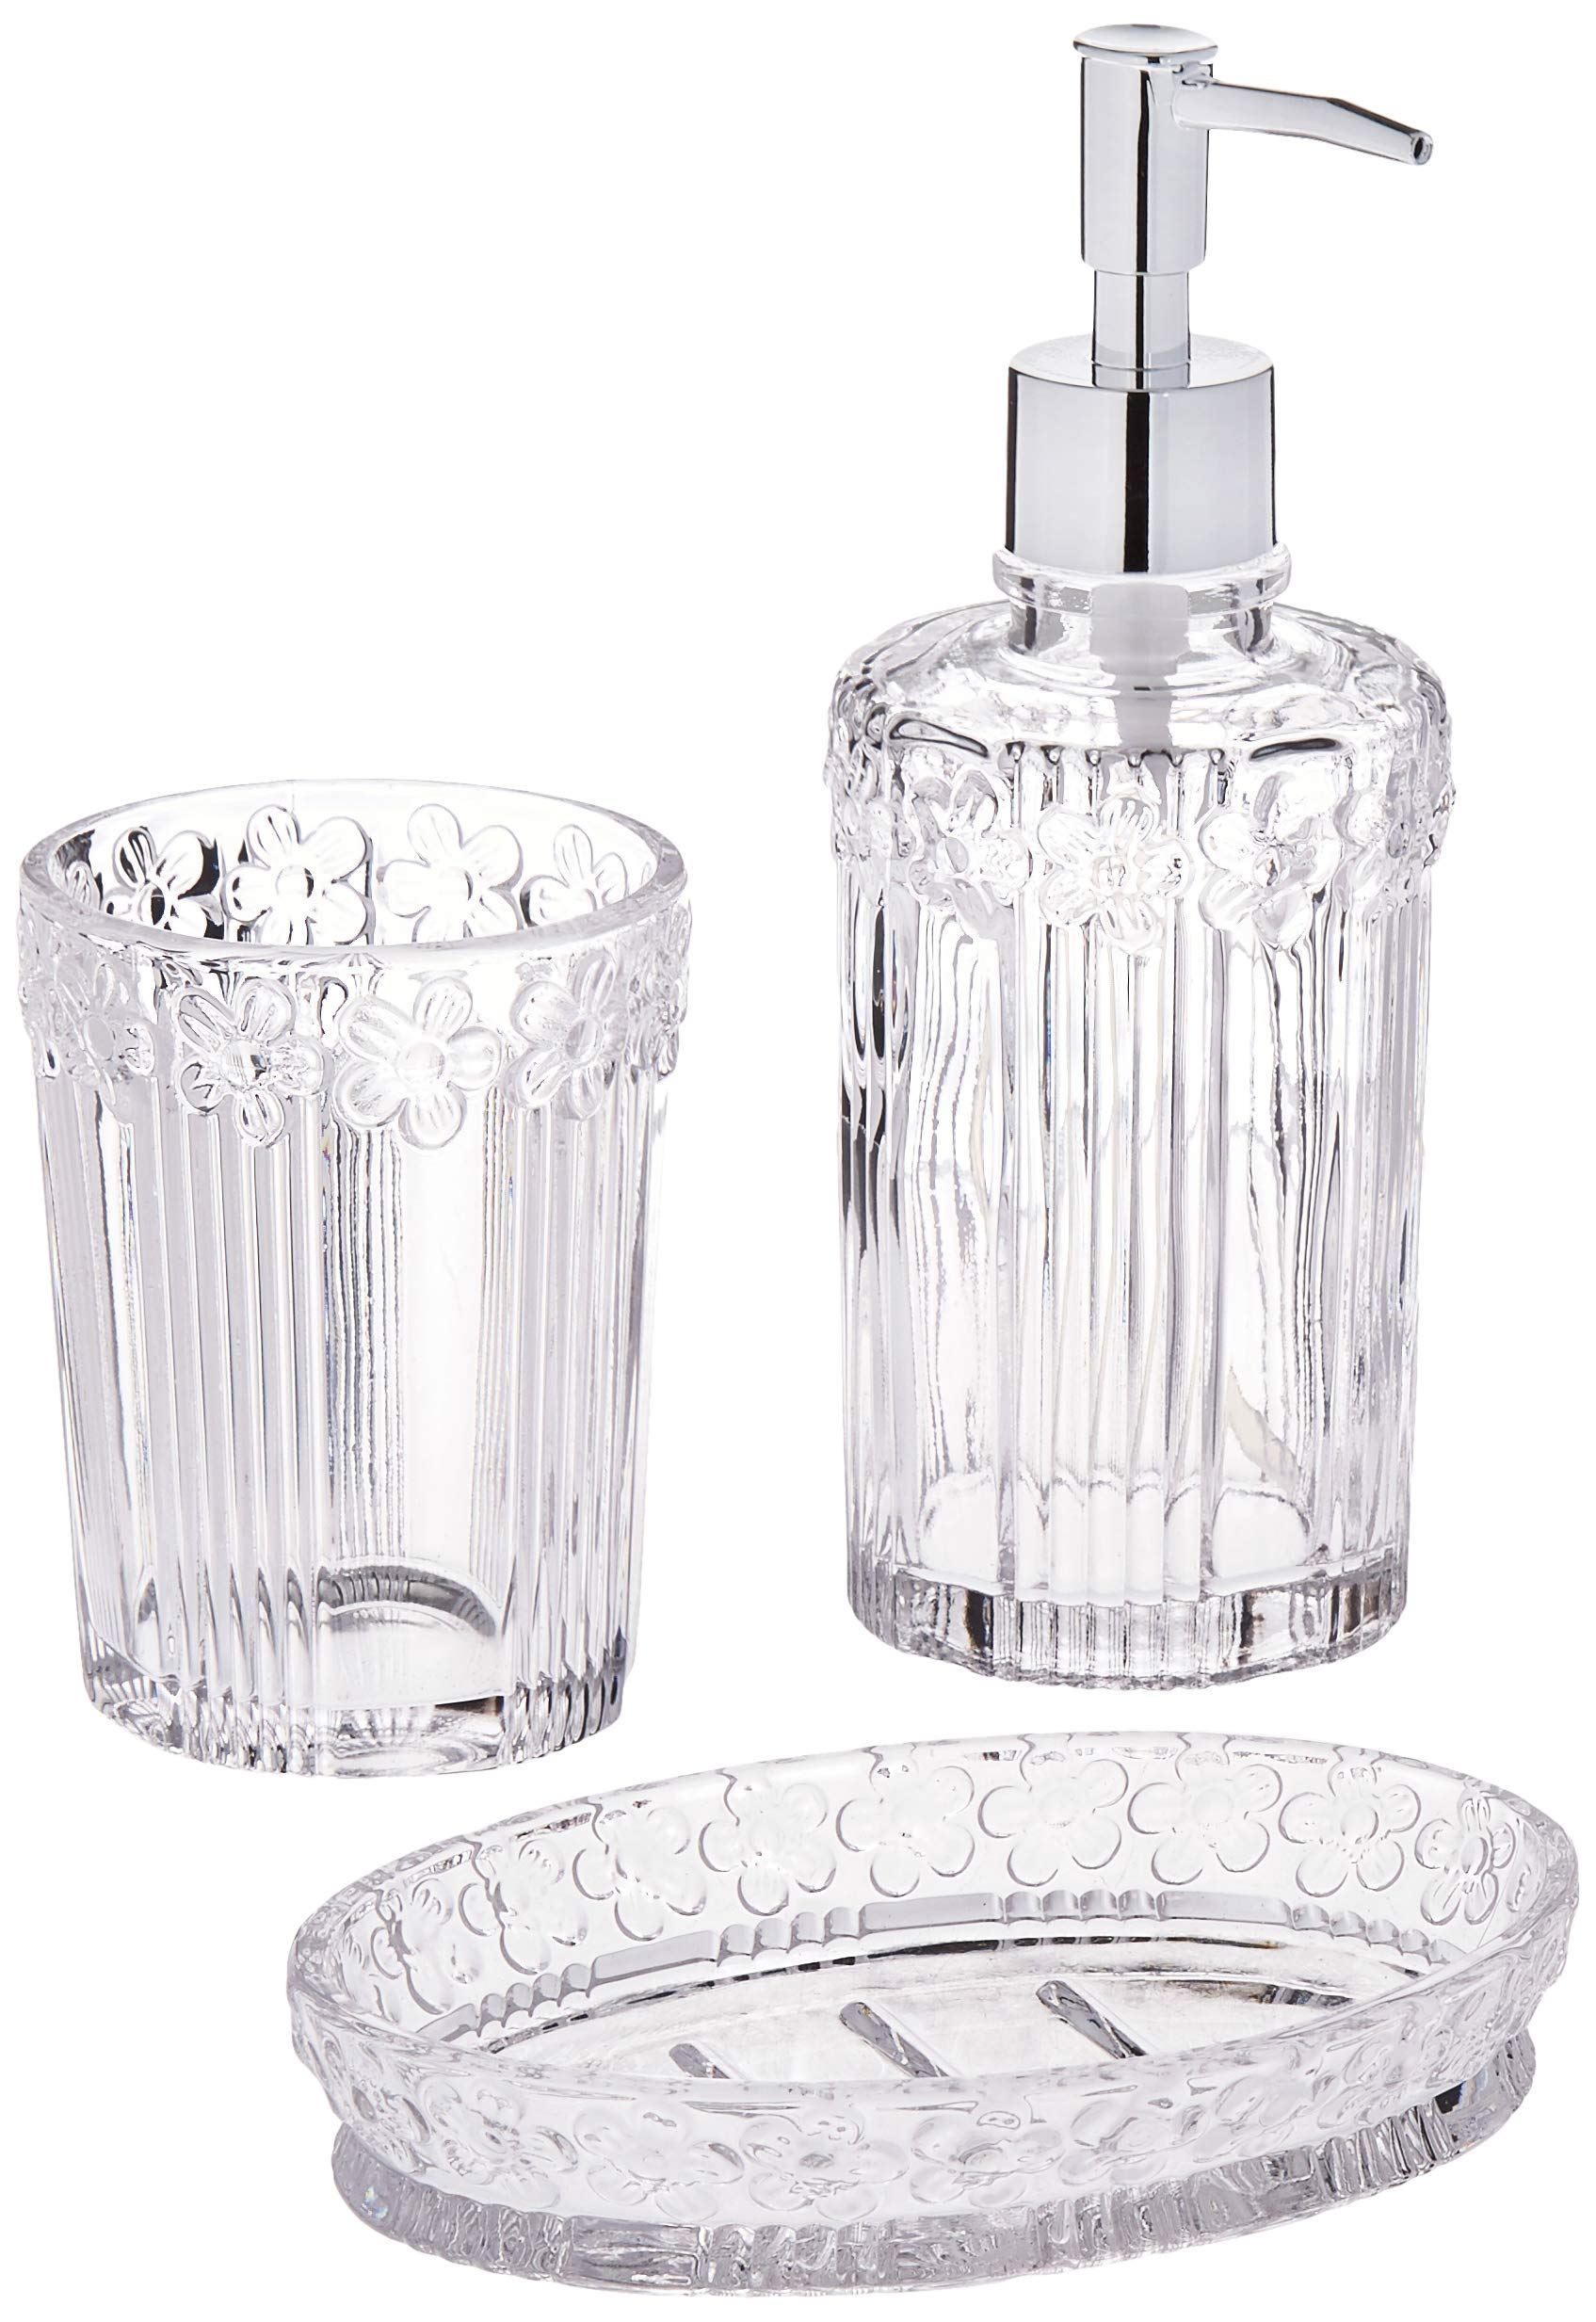 Circleware 32461 Daisy Bath Collection Home Decor Bathroom Accessories, 3-Piece Set of 12 oz Soap Dispenser, 10 oz Tumbler and Soap Dish, Clear by Circleware